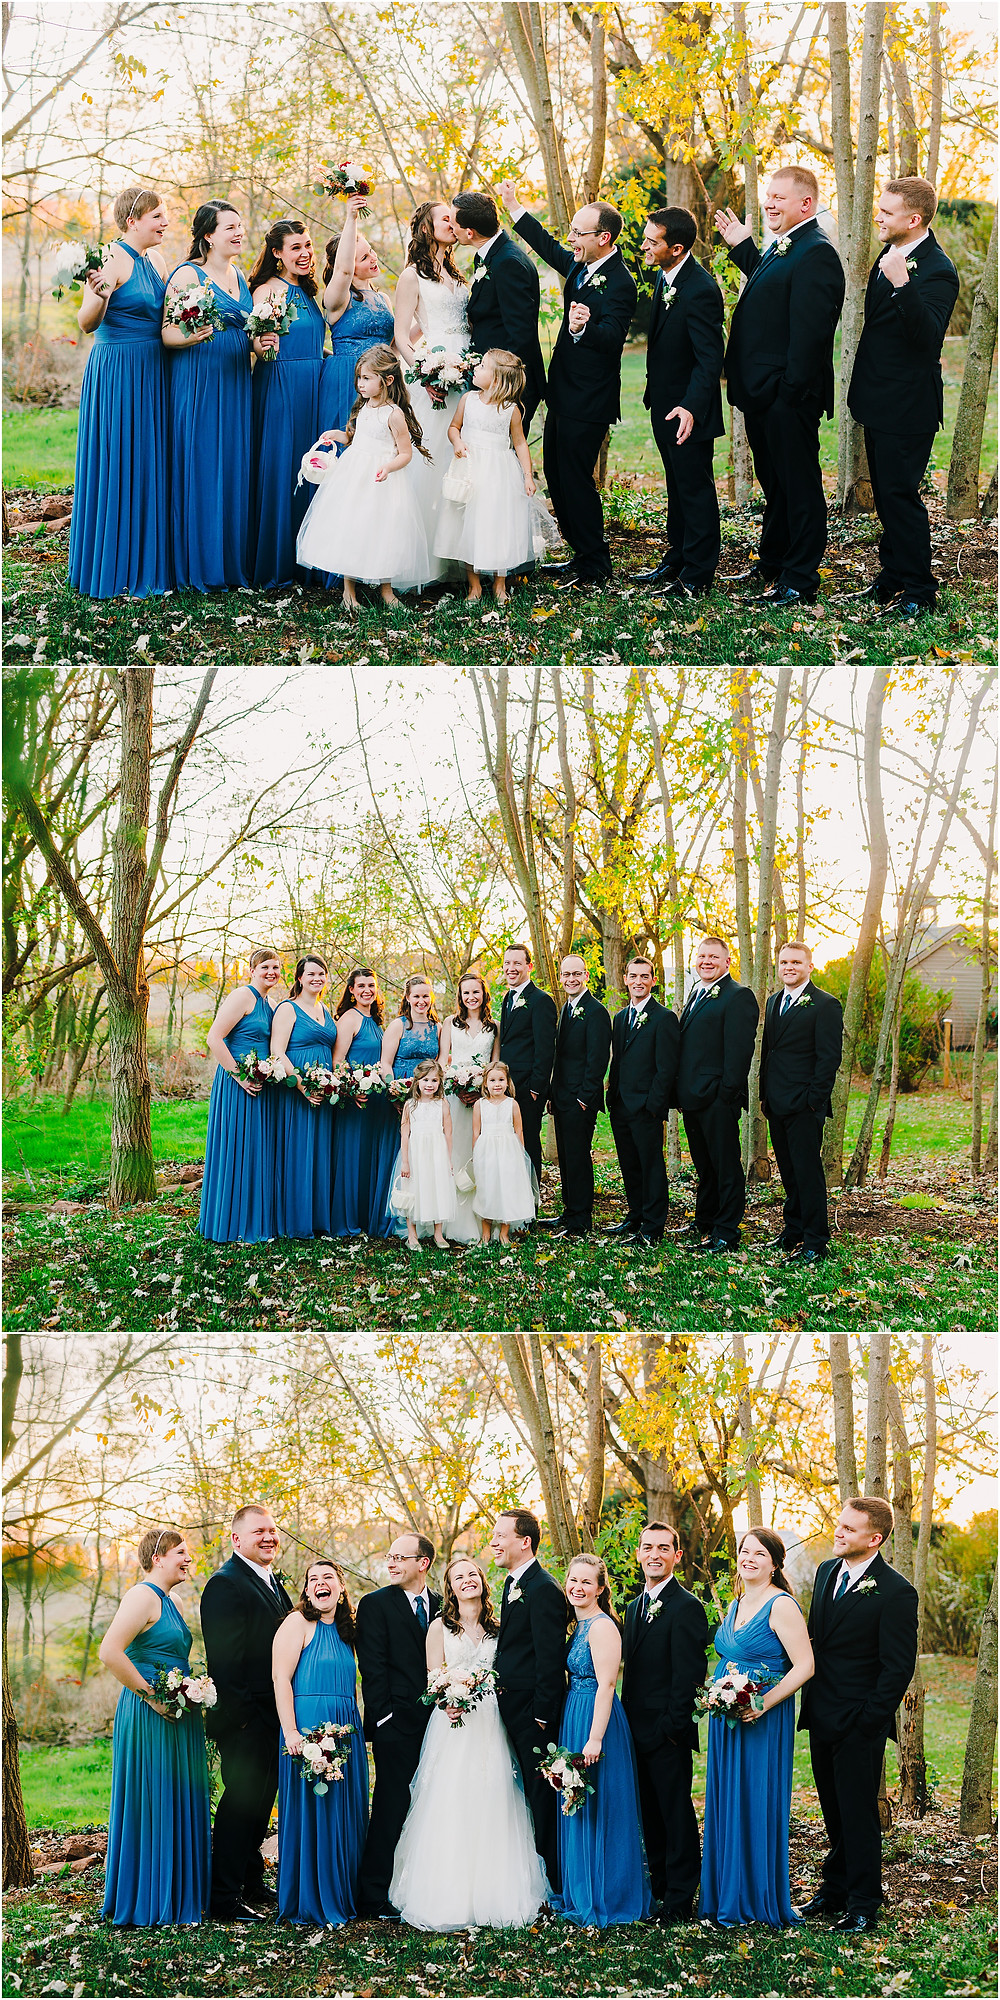 Sunset Wedding Party Portraits at the Tannery Barn Maryland Wedding Photographer